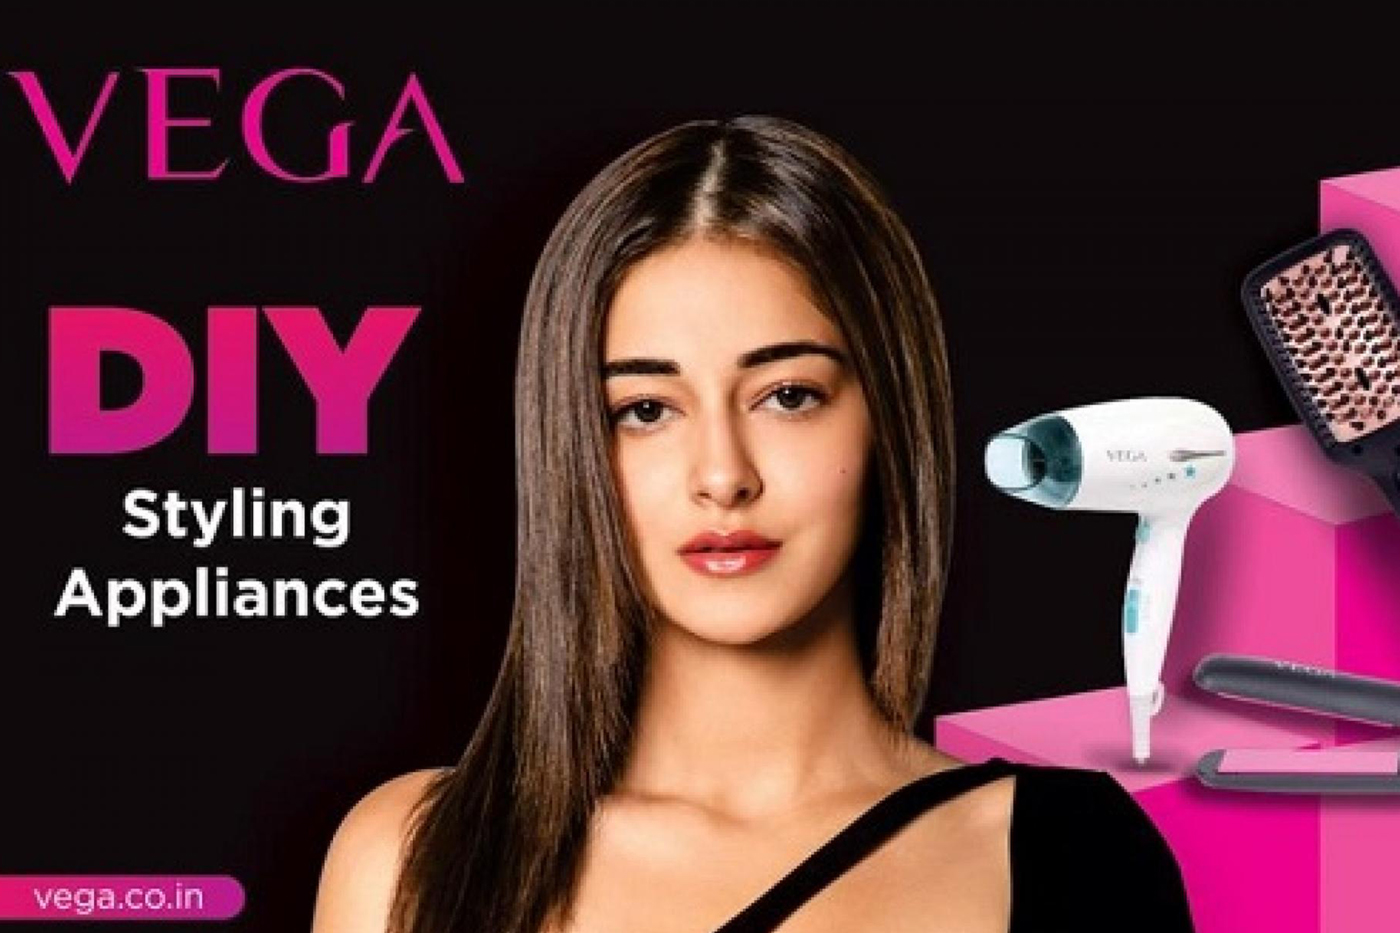 Ananya Panday is now the face of Vega